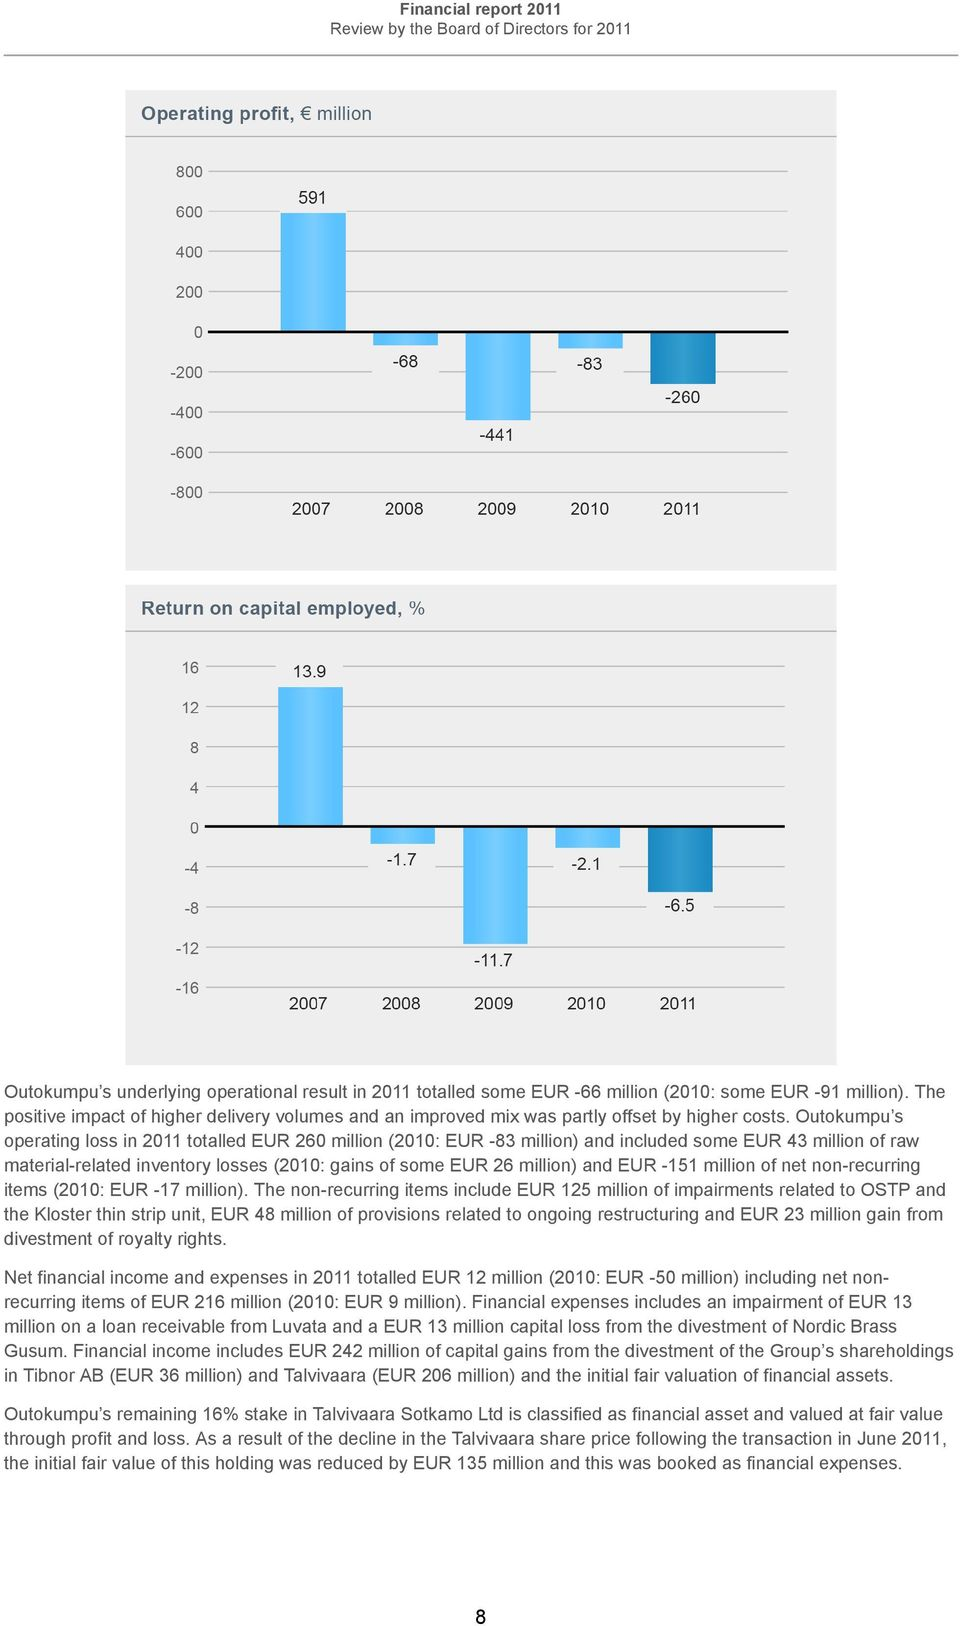 Outokumpu s operating loss in 2011 totalled EUR 260 million (2010: EUR -83 million) and included some EUR 43 million of raw material-related inventory losses (2010: gains of some EUR 26 million) and